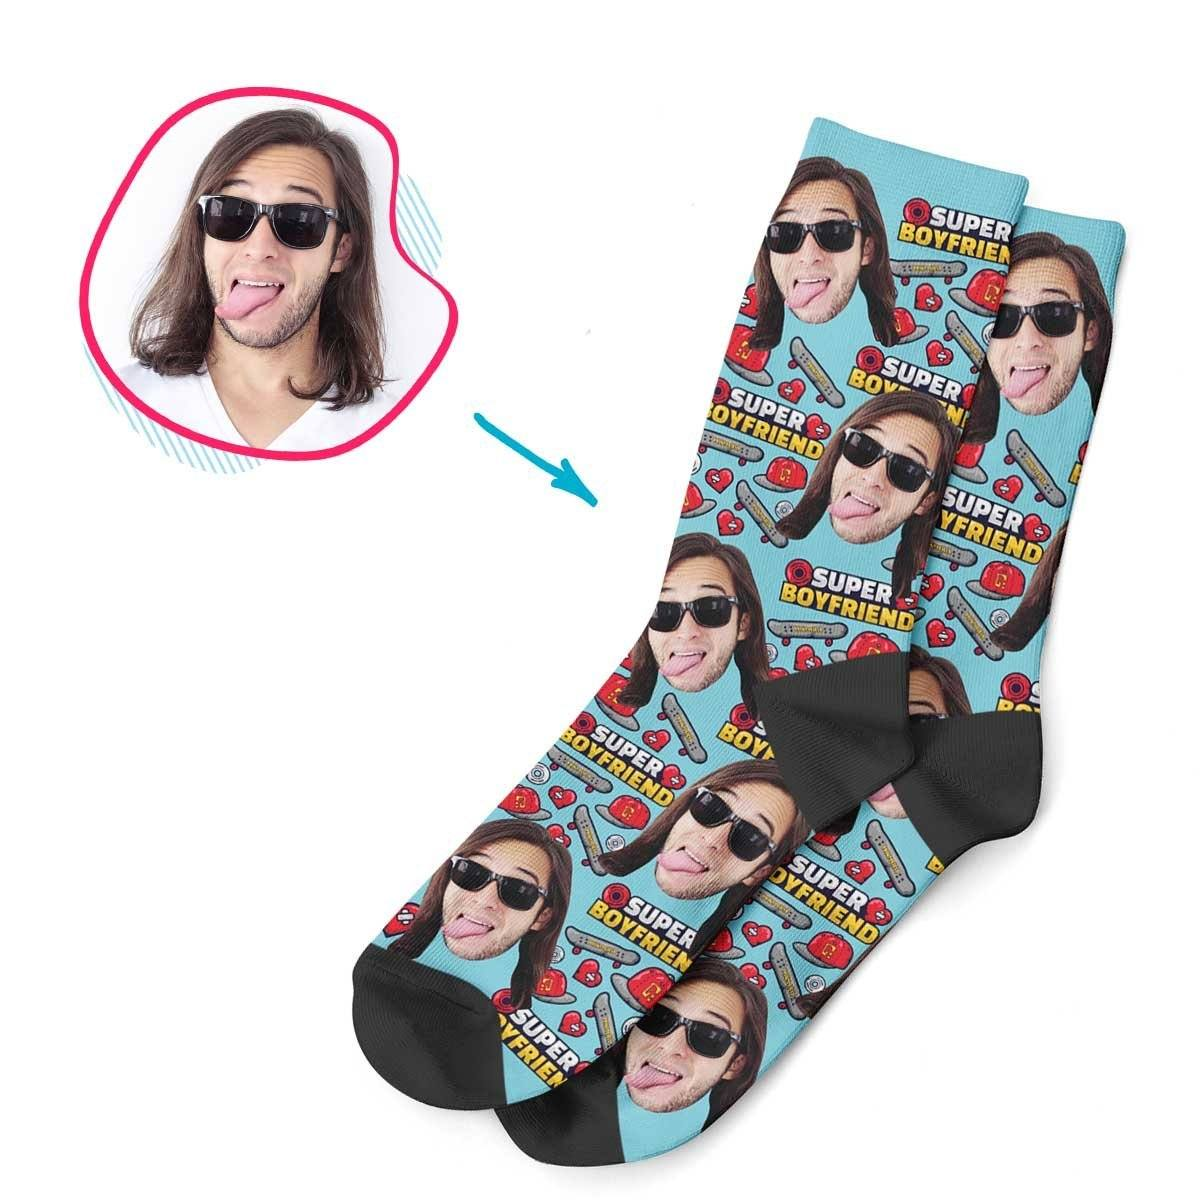 Blue Boyfriend personalized socks with photo of face printed on them